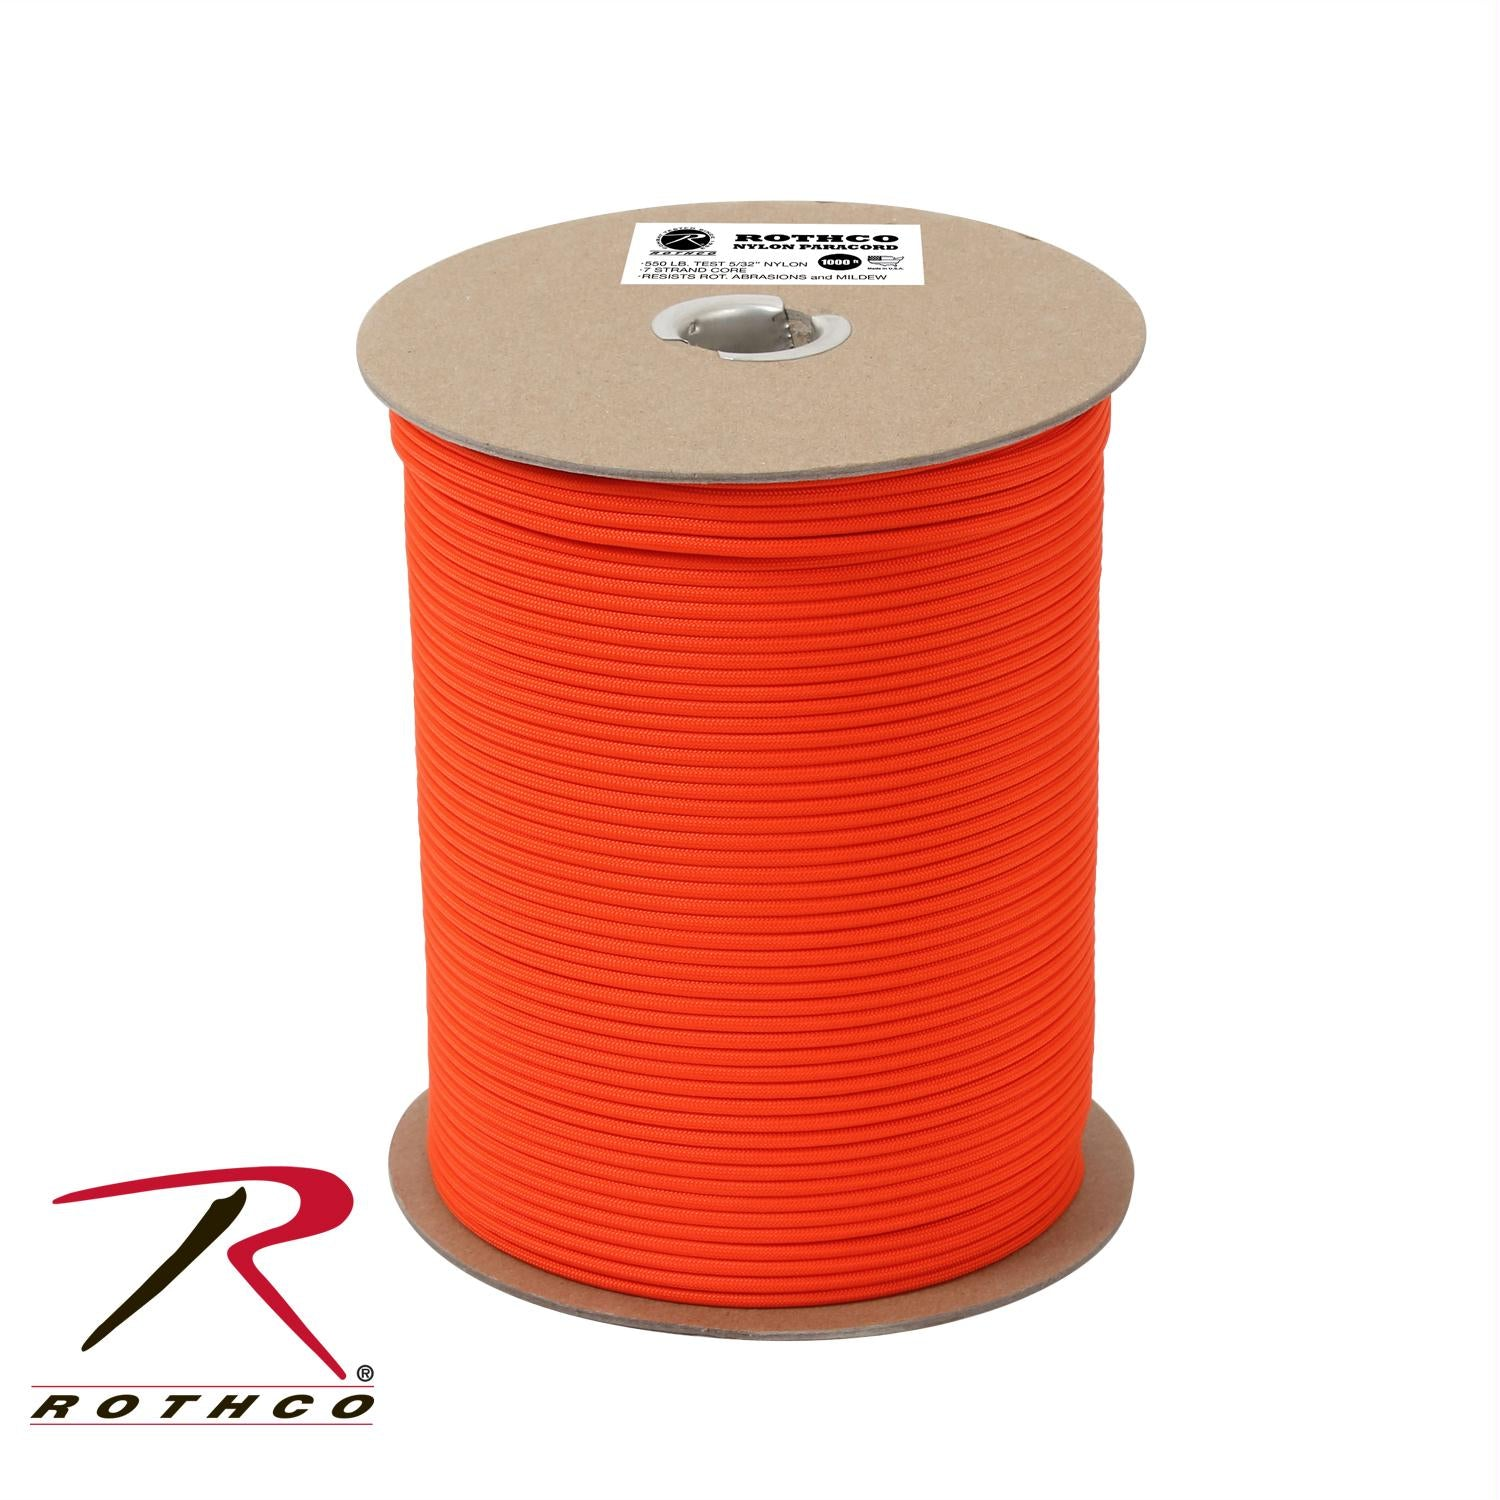 Rothco Nylon Paracord 550lb 1000 Ft Spool - Safety Orange